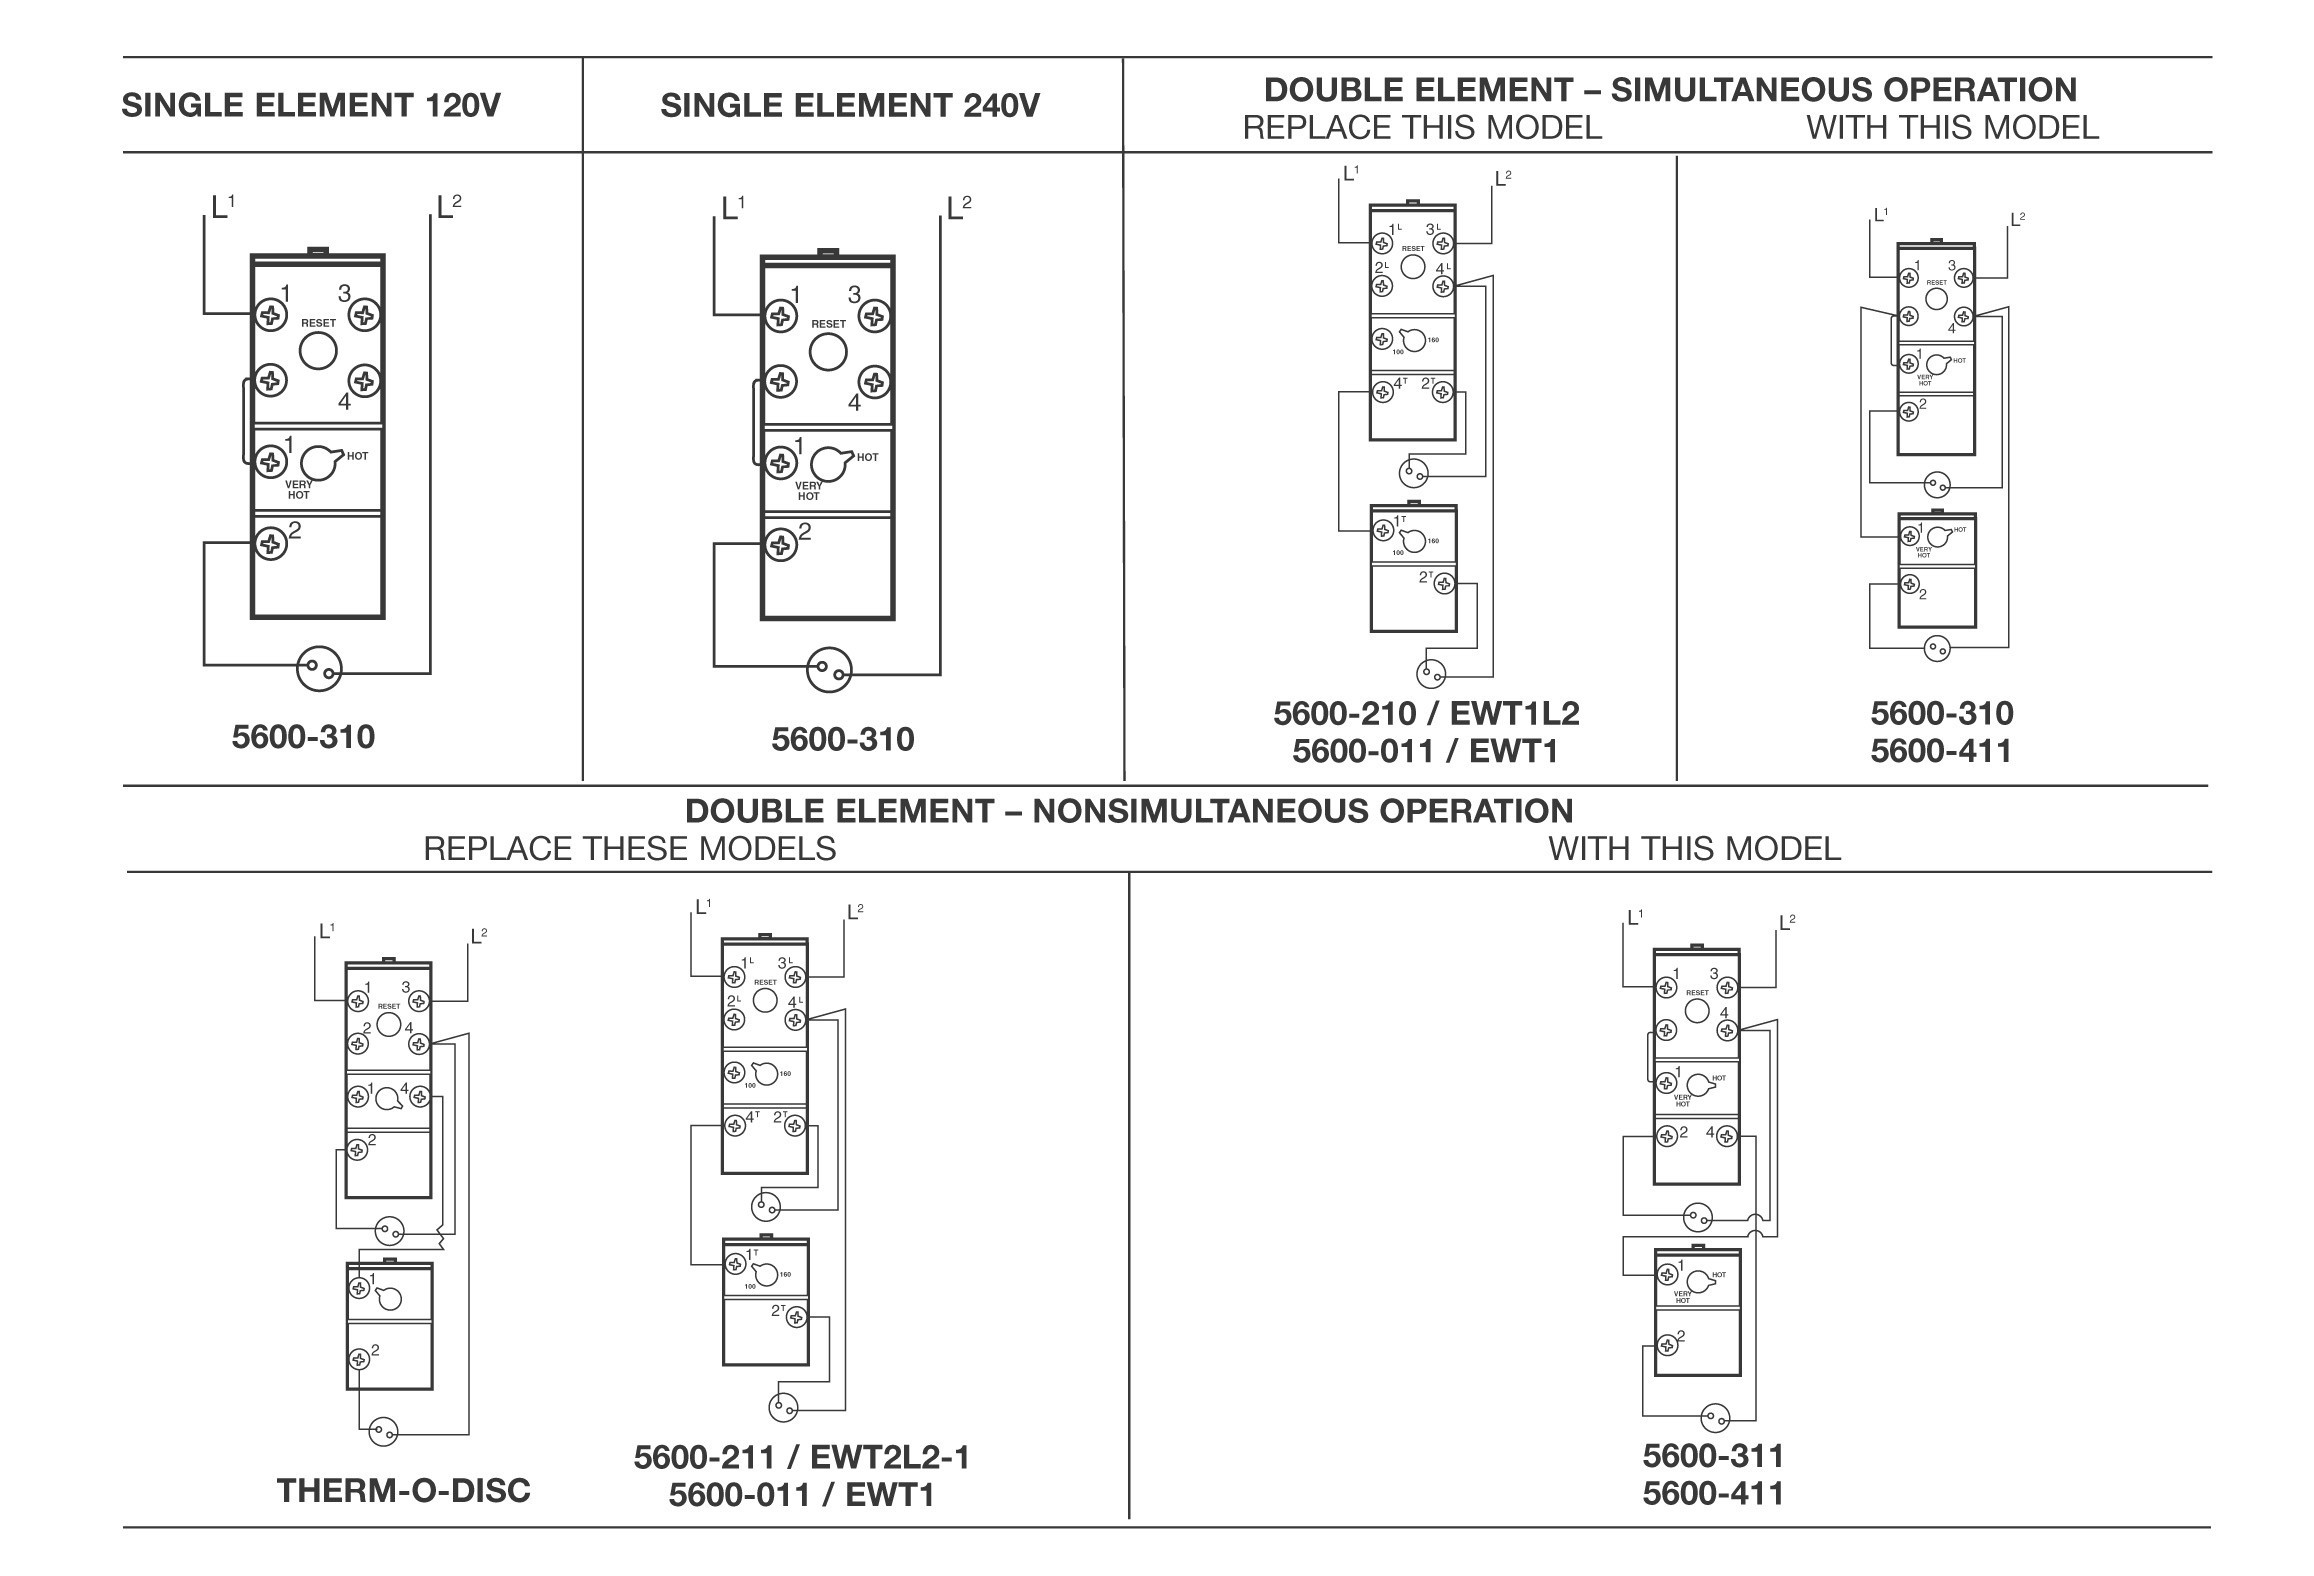 electric baseboard wiring diagram Collection-Wiring Diagram For Electric Baseboard Heater Fresh Wiring Diagram 220v Baseboard Heater Inspirationa Electric Baseboard 20-j